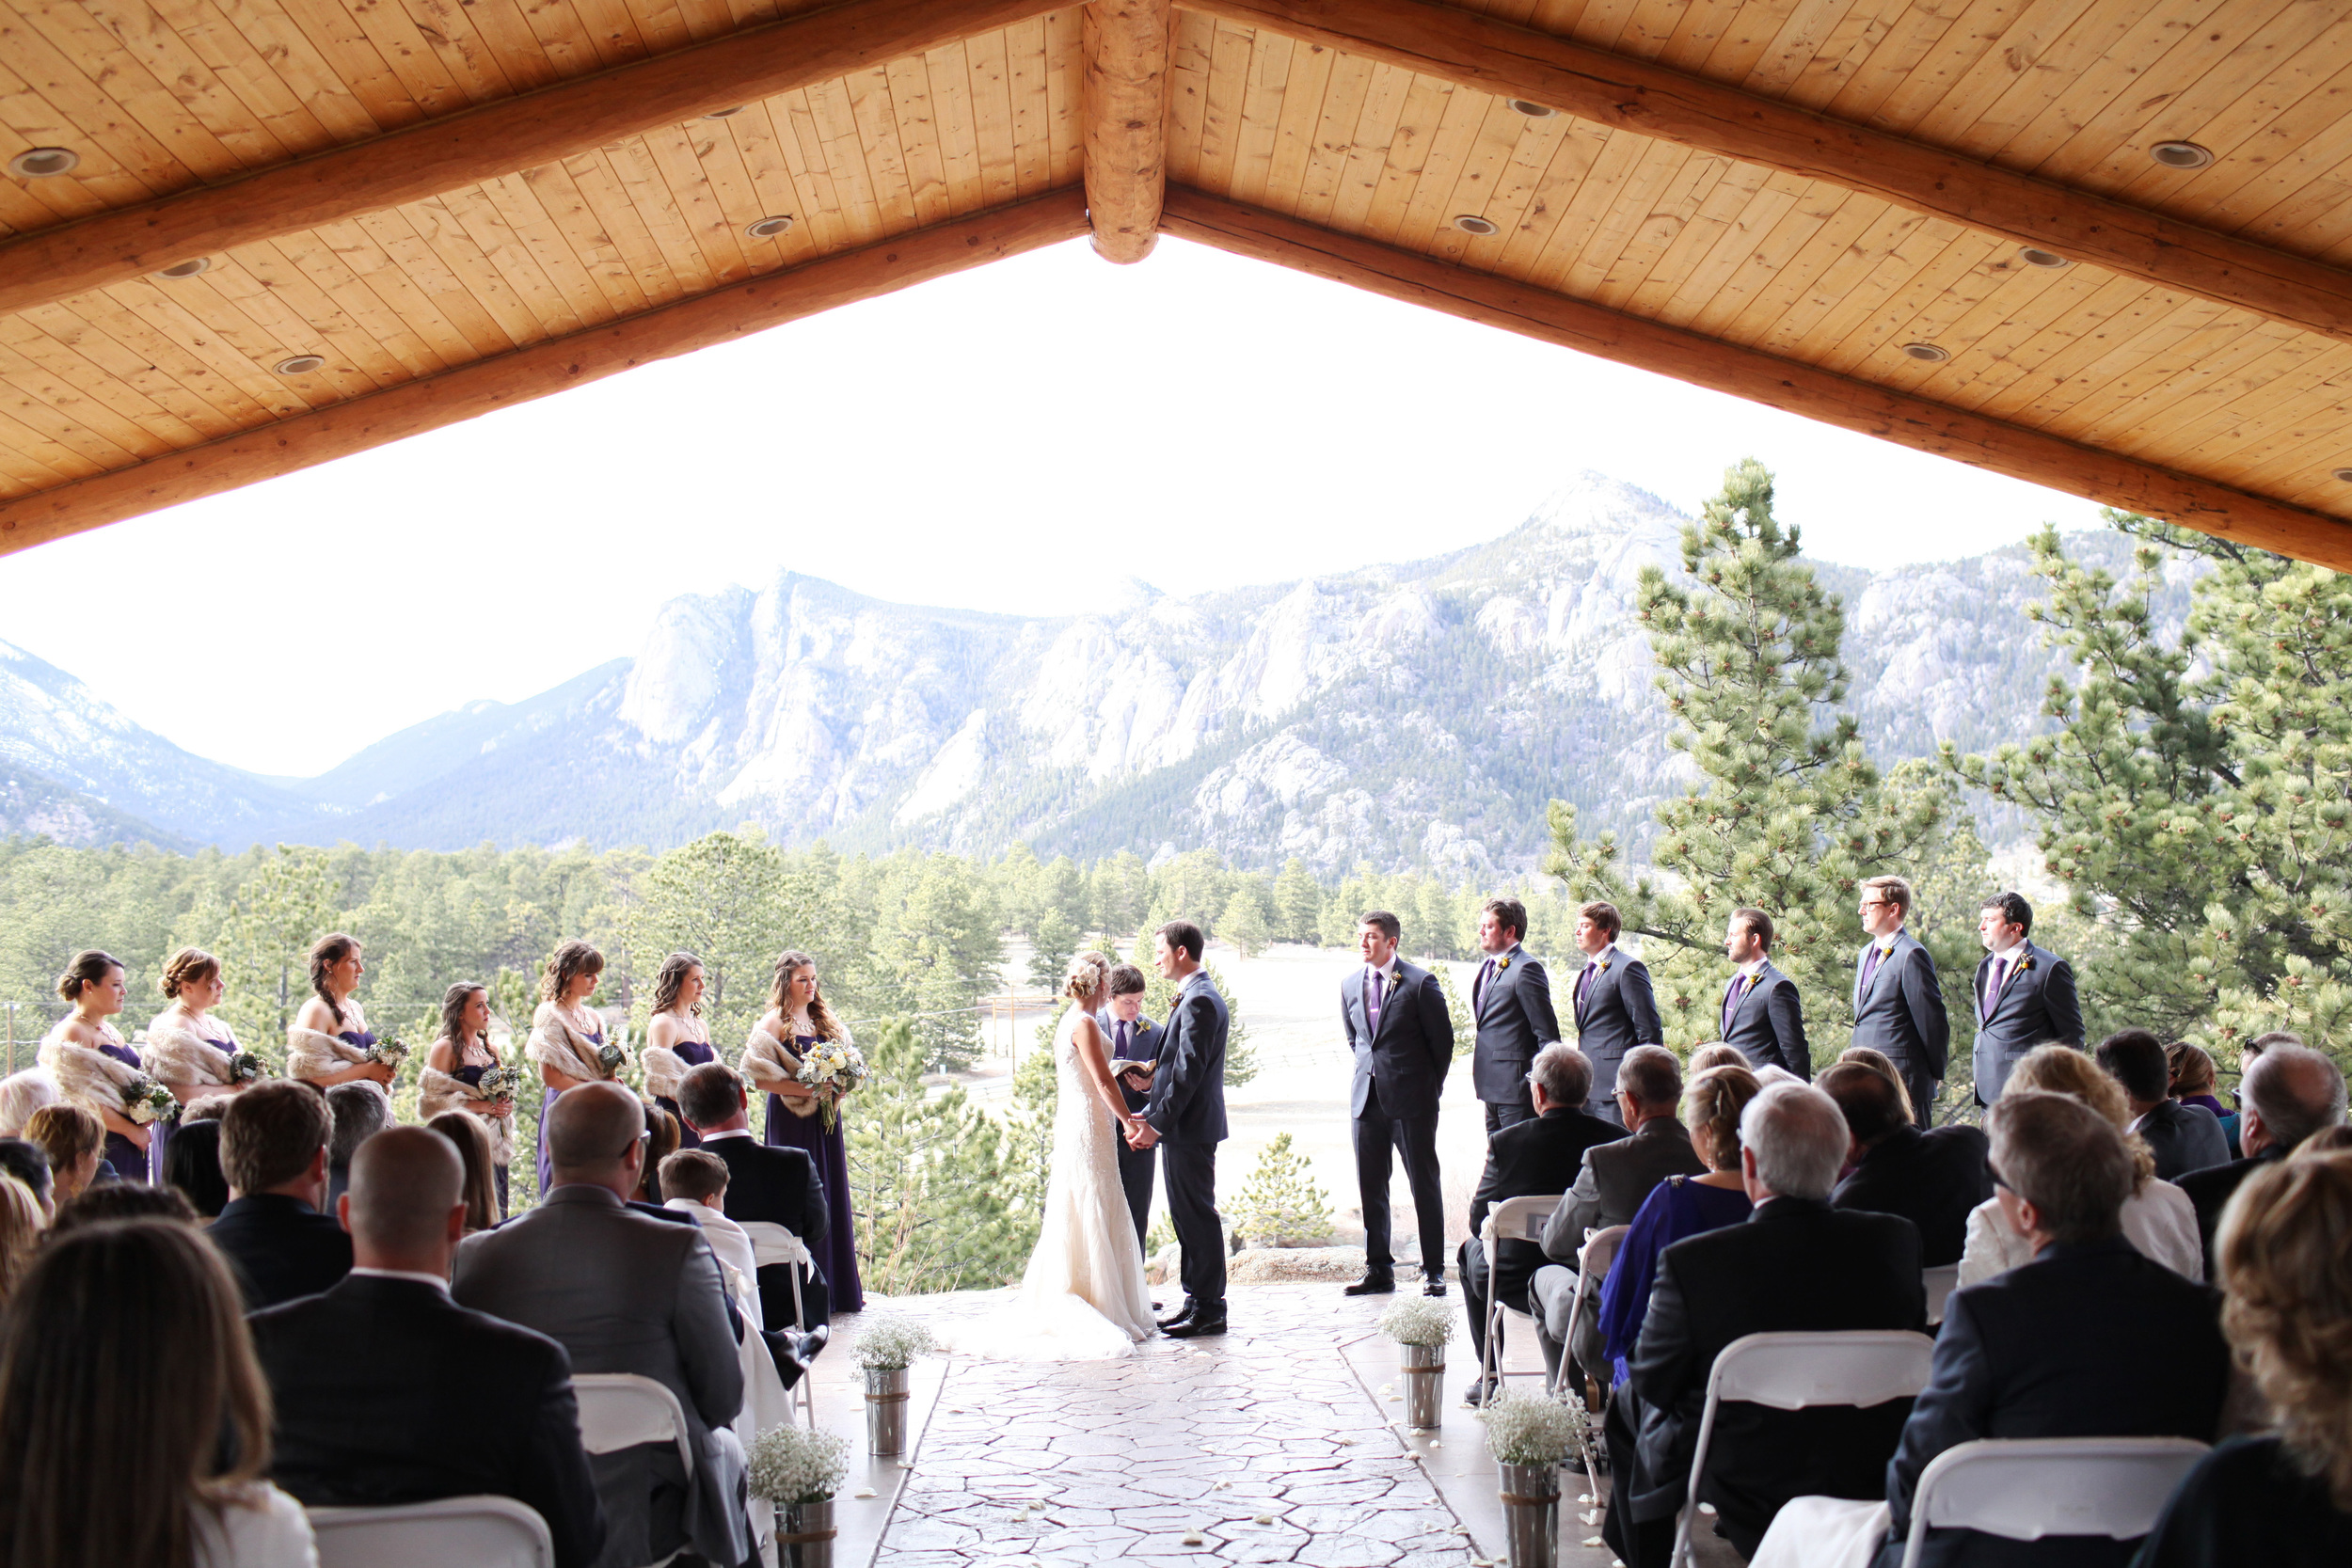 Spring Mountain Wedding | Estes Park, Colorado | Bello & Blue Events | Colorado & Denver Wedding Planner